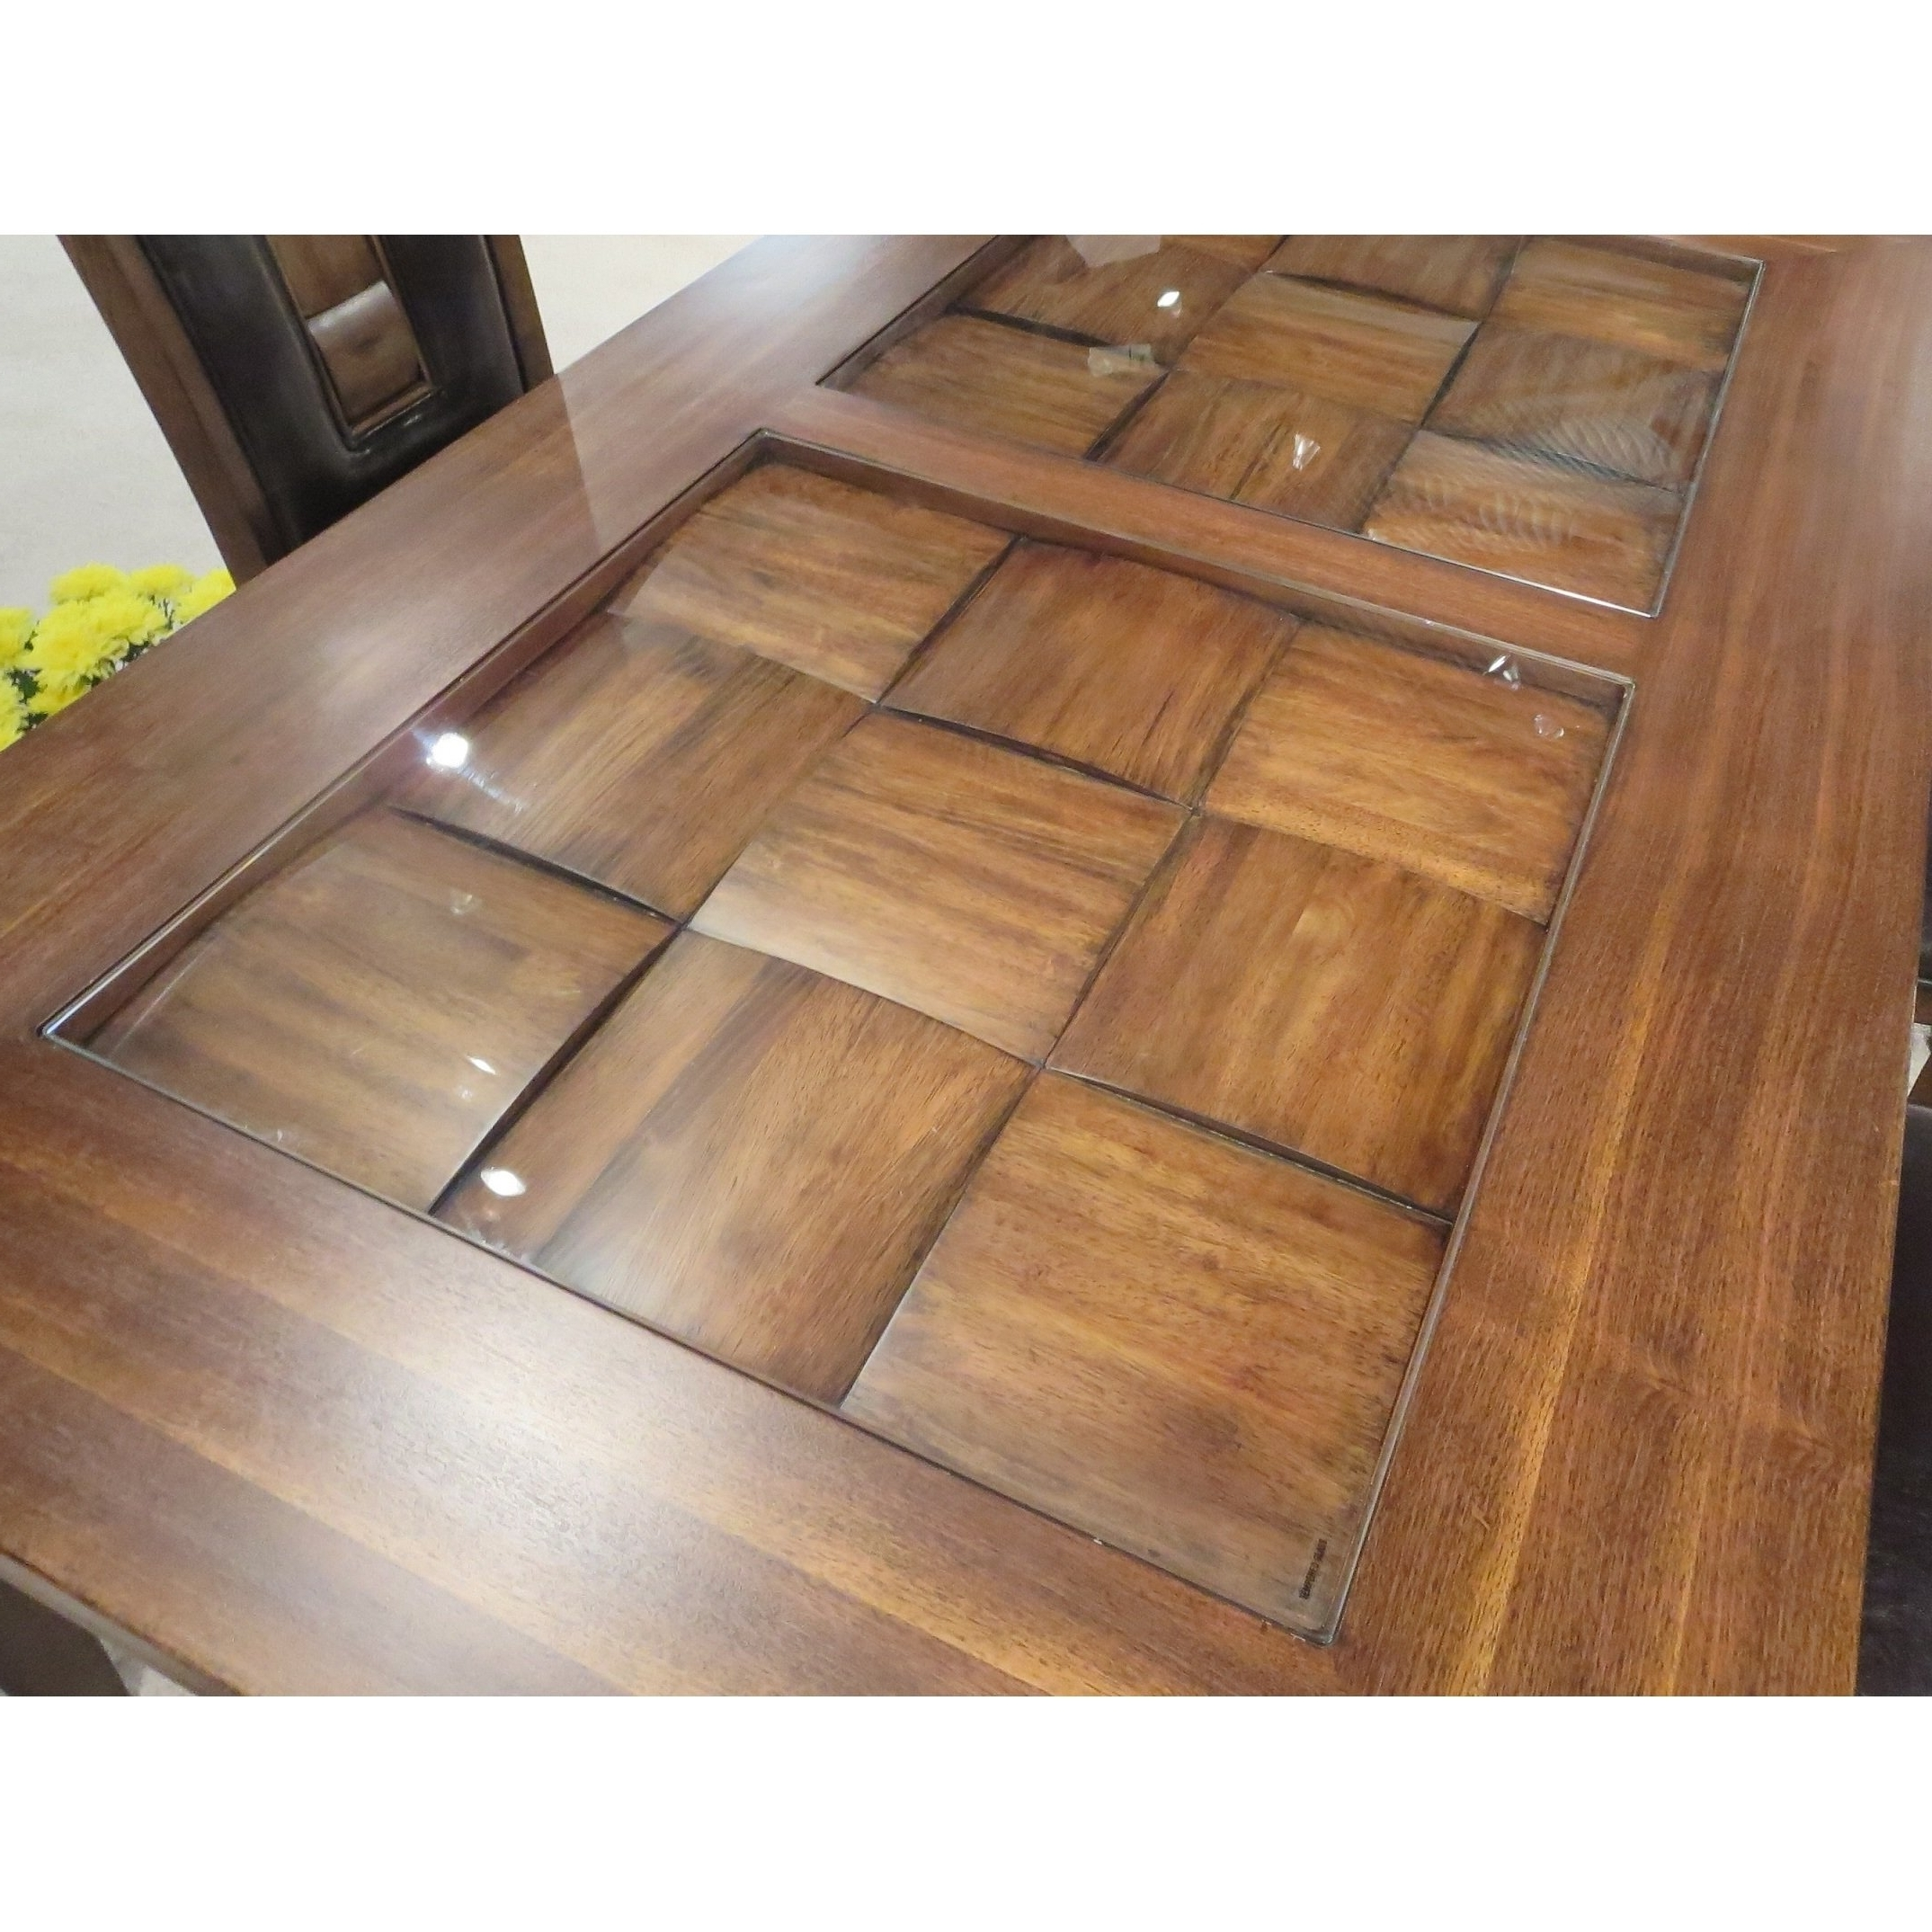 Shop Calais 7 Piece Parquet Finish Solid Wood Dining Table With 6 Intended For Most Popular Parquet 6 Piece Dining Sets (View 16 of 25)